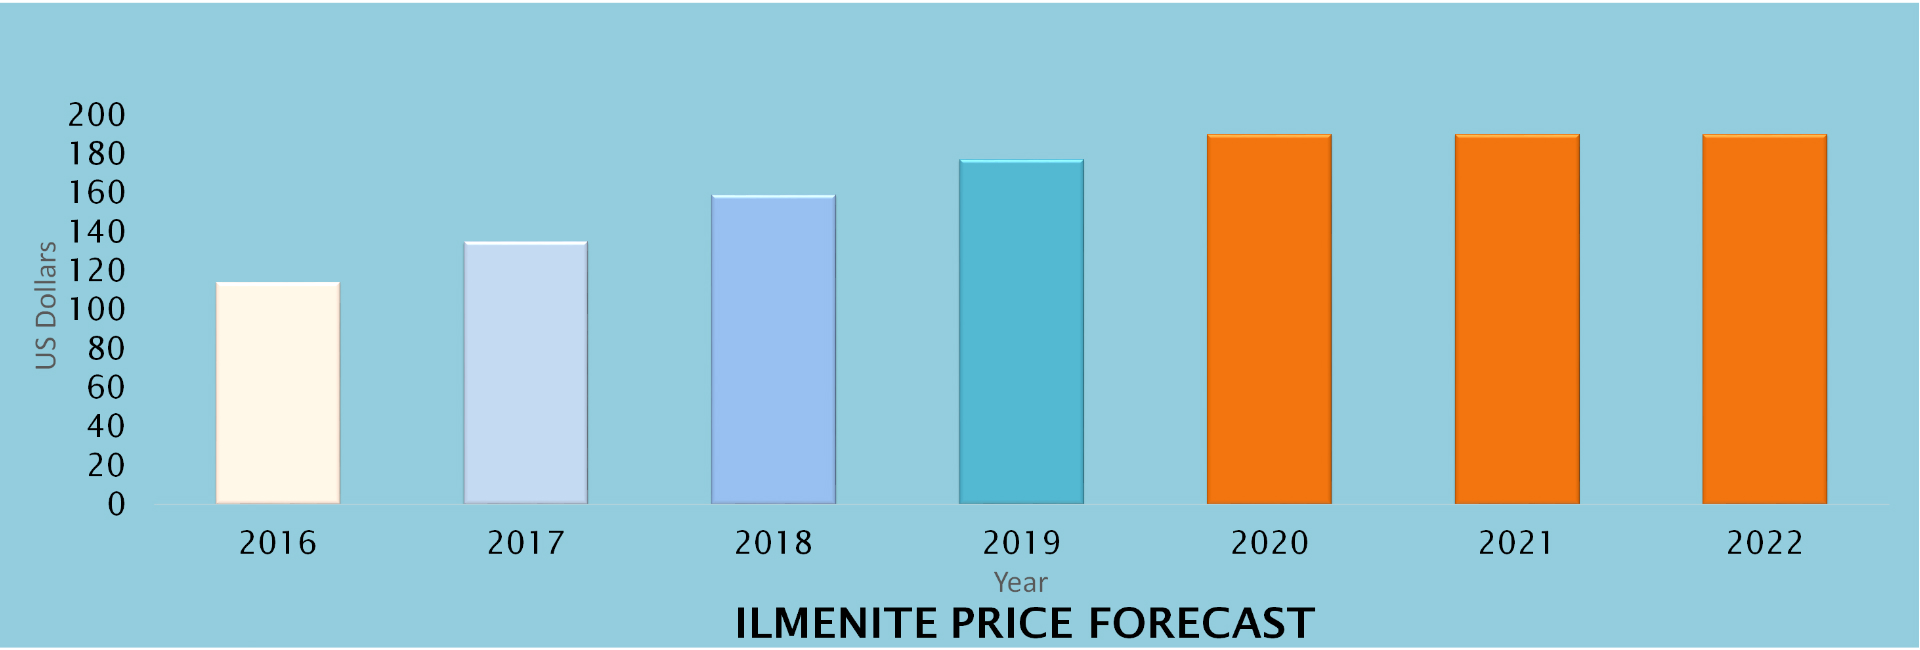 ilmenite-price-forecast2